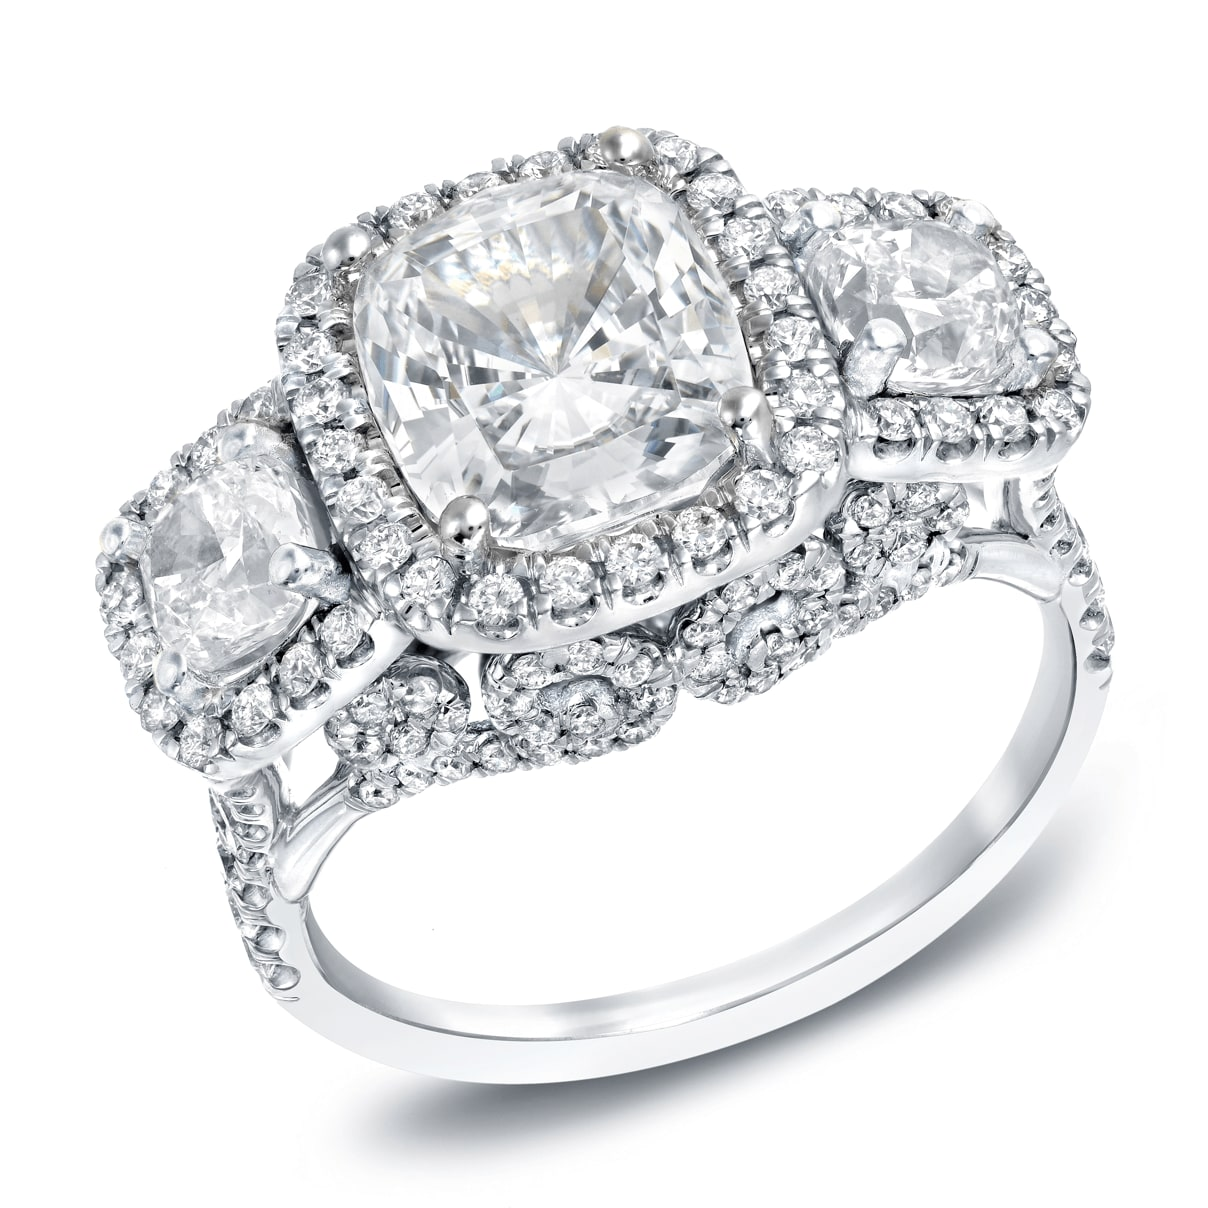 A One-Of-A-Kind style unique engagement ring